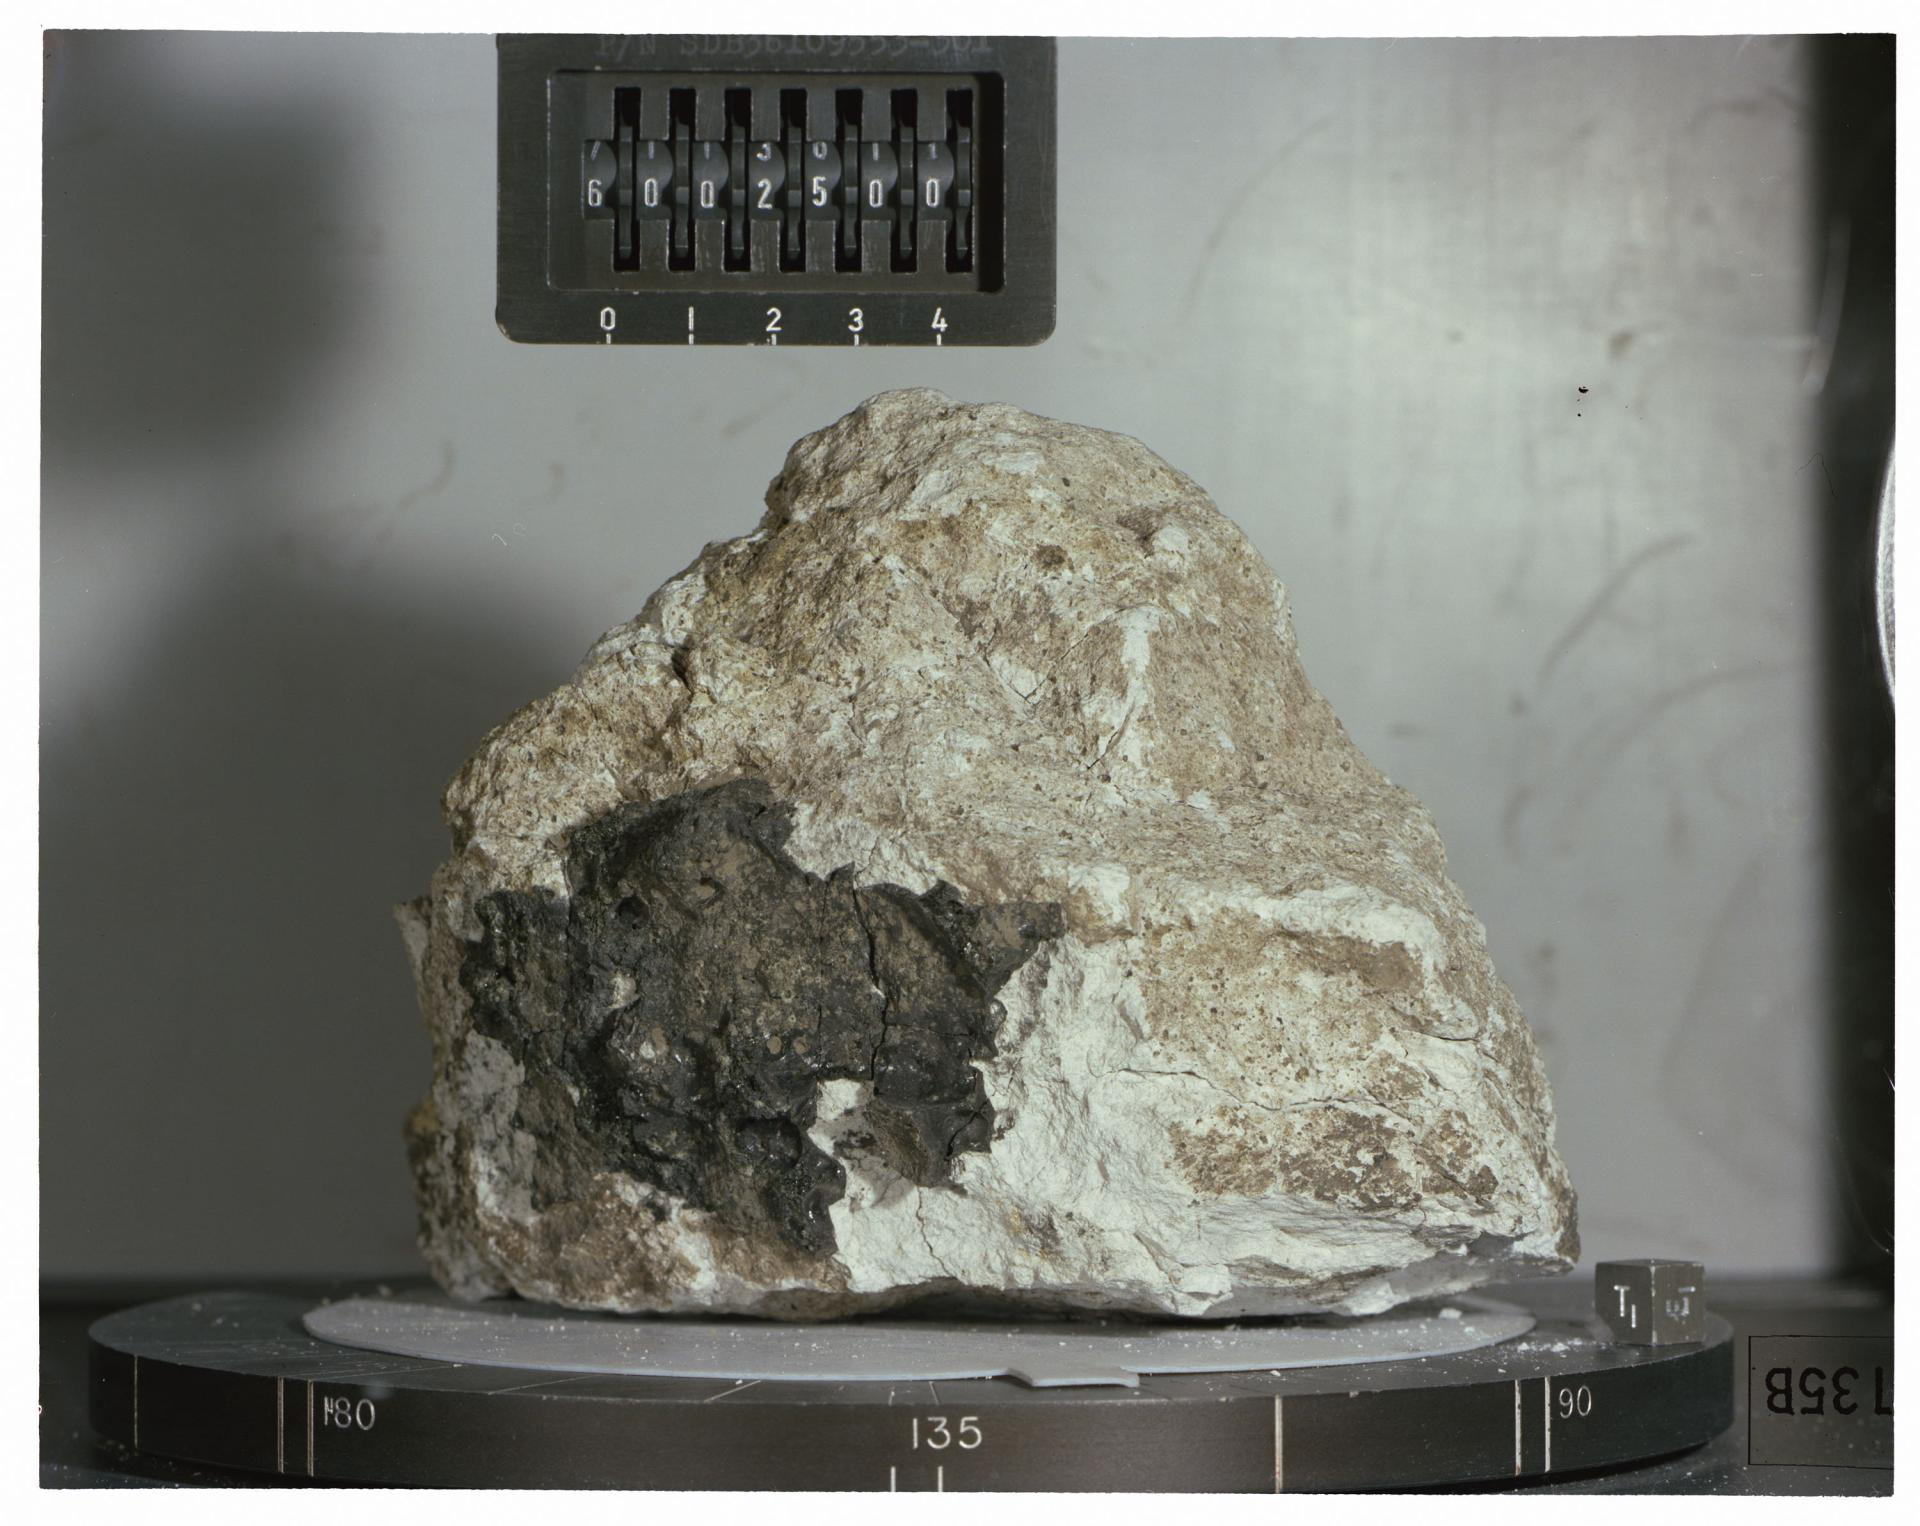 One of the oldest Moon rocks